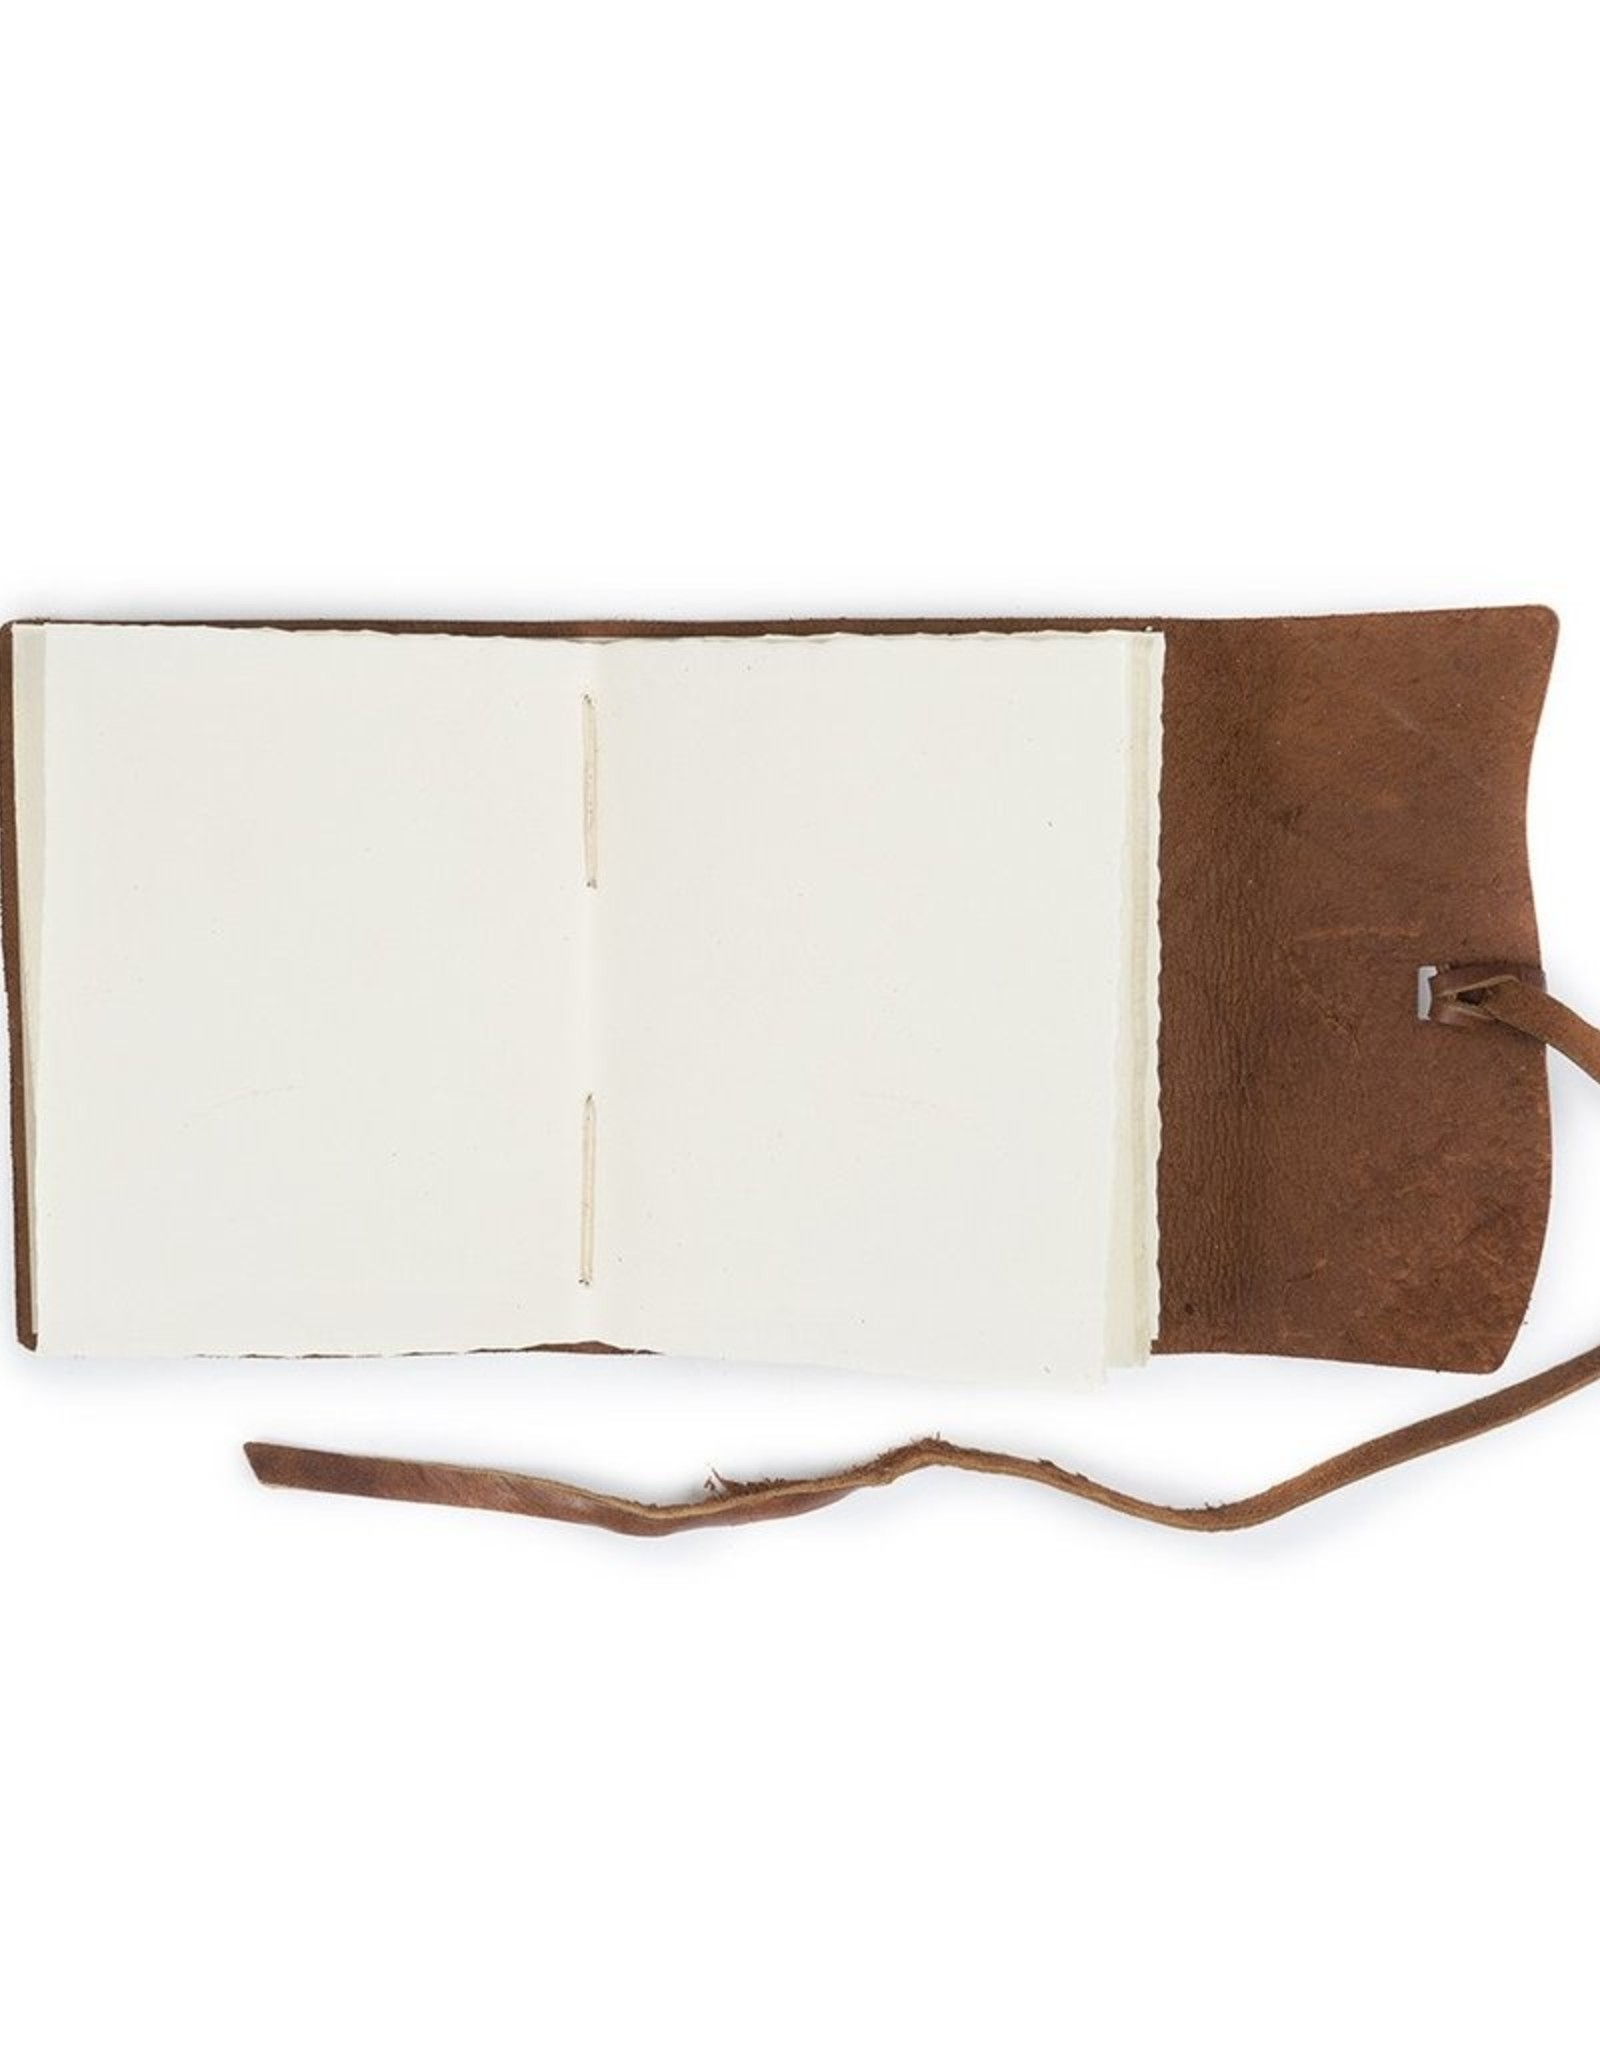 Rustico Leather Hand-Stitched Parley Journal